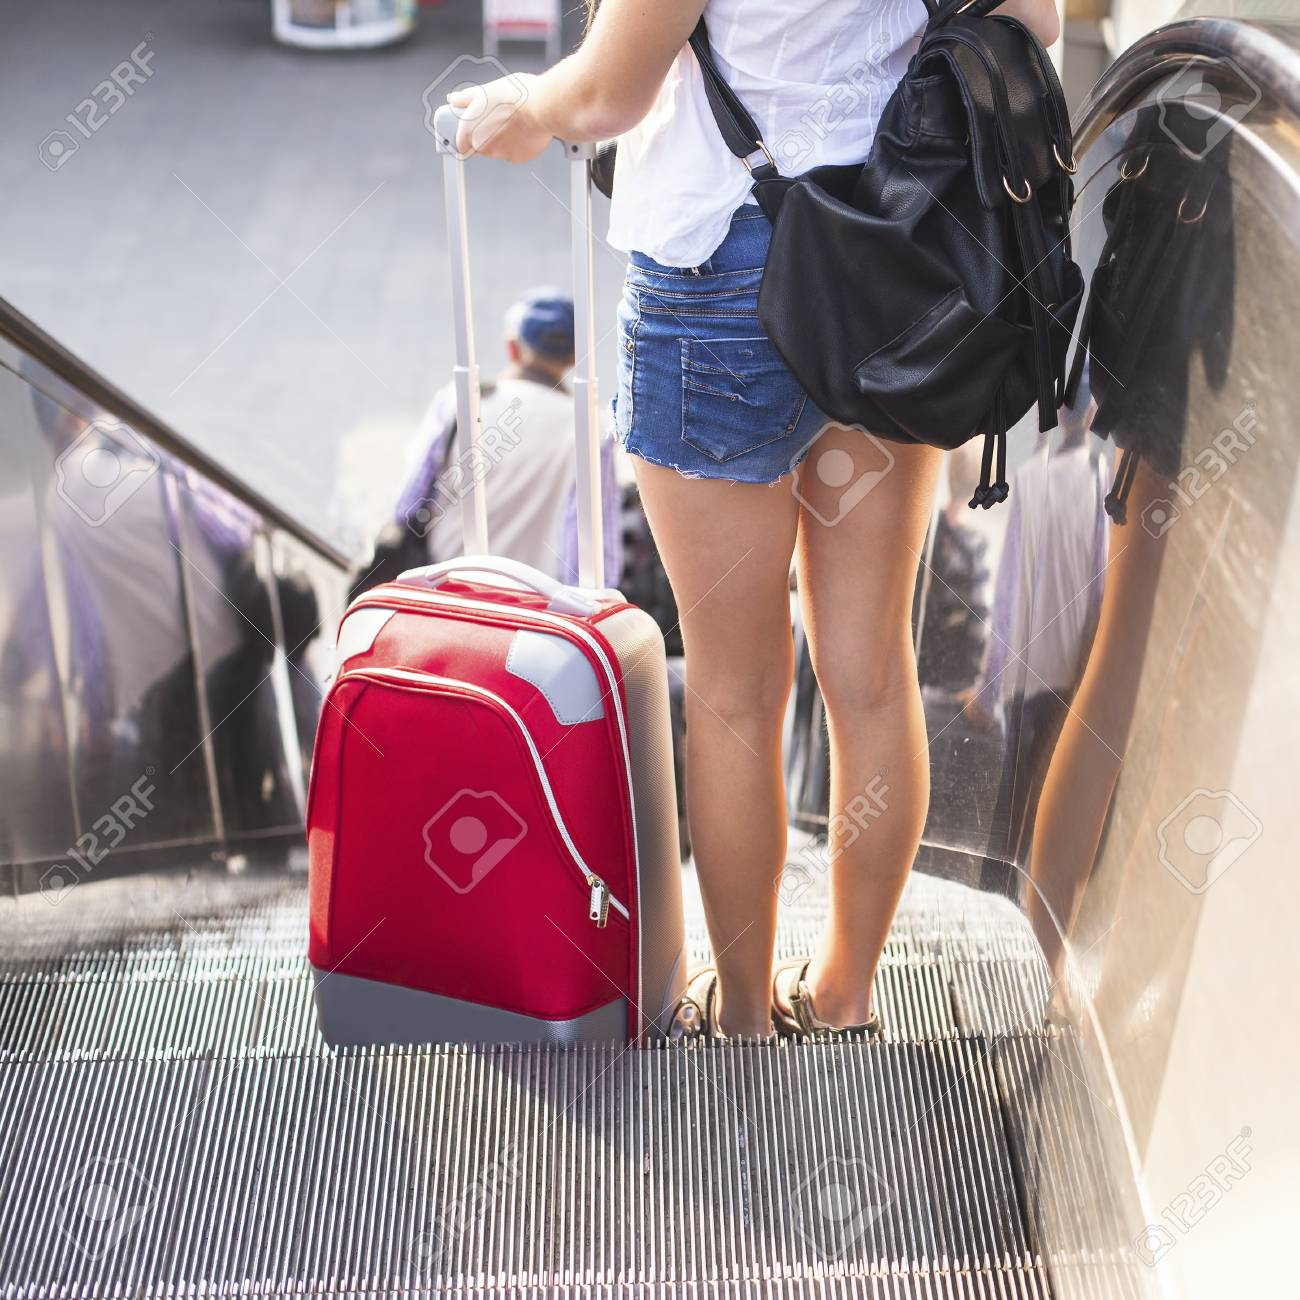 Young girl with the red suitcase standing on the escalator. Travel concept. - 37542855